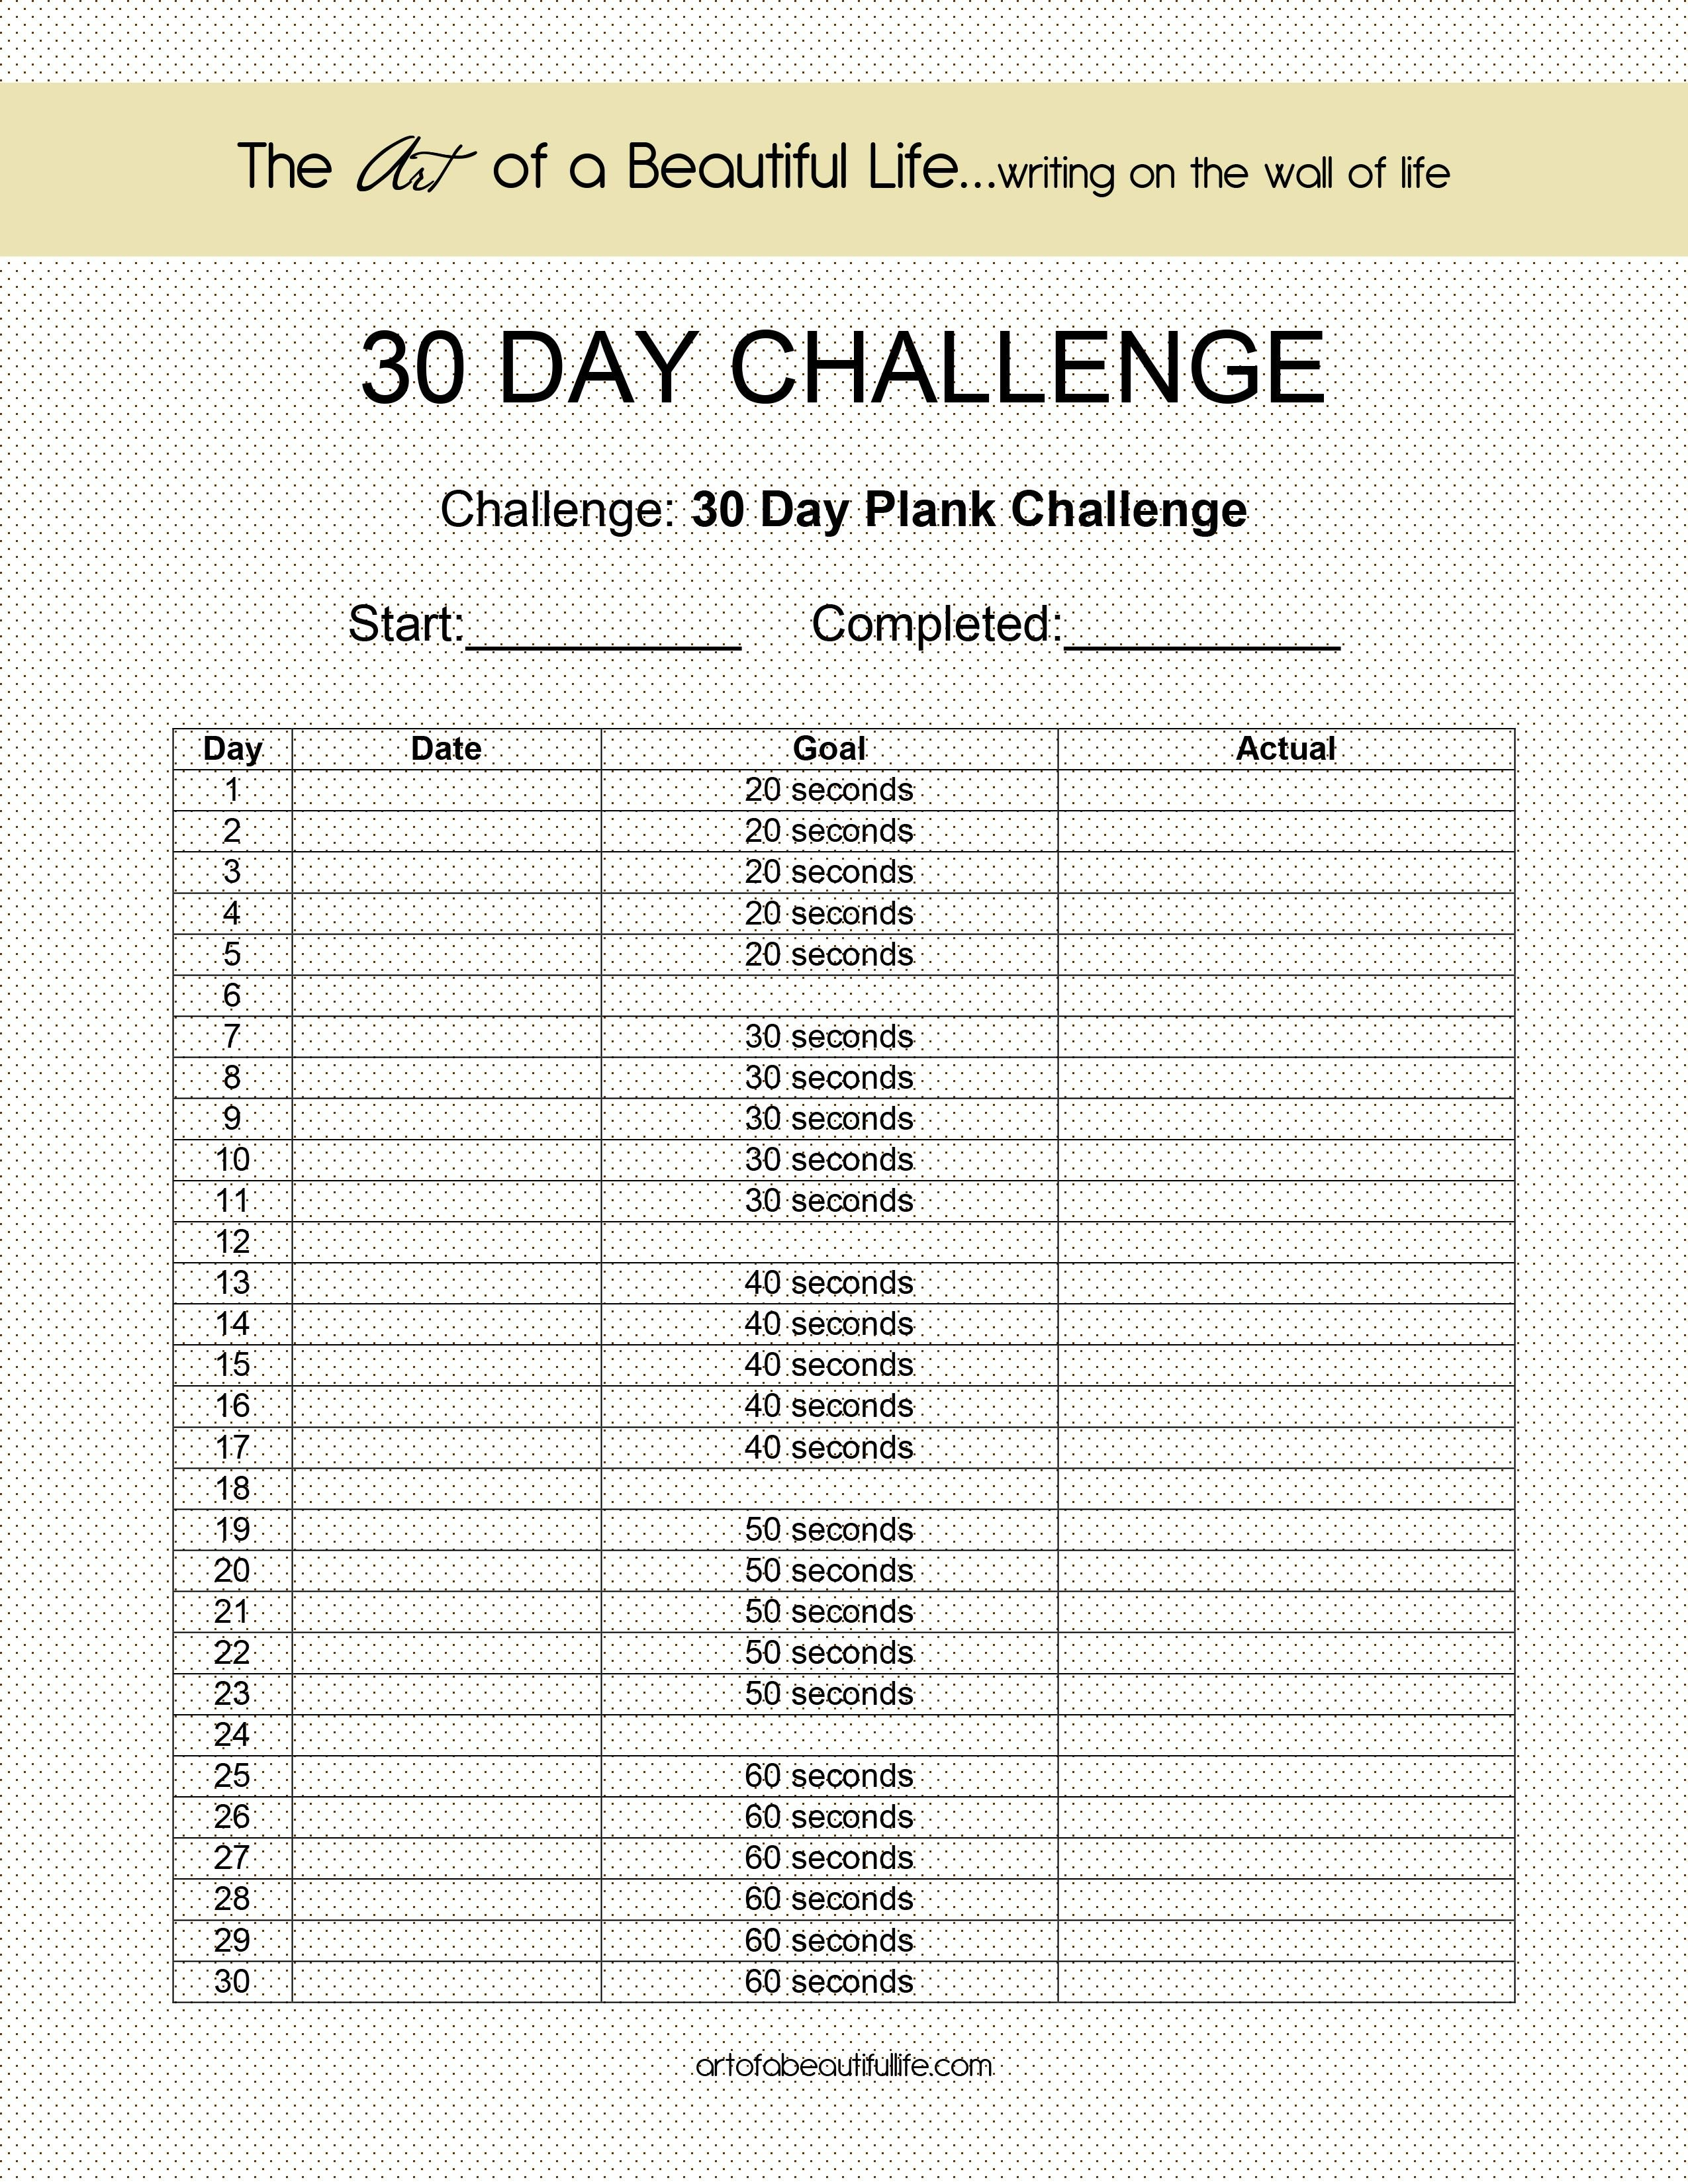 30 Day Challenge - Easy Plank (With Images) | 30 Day Plank 30 Day Challenge Printable